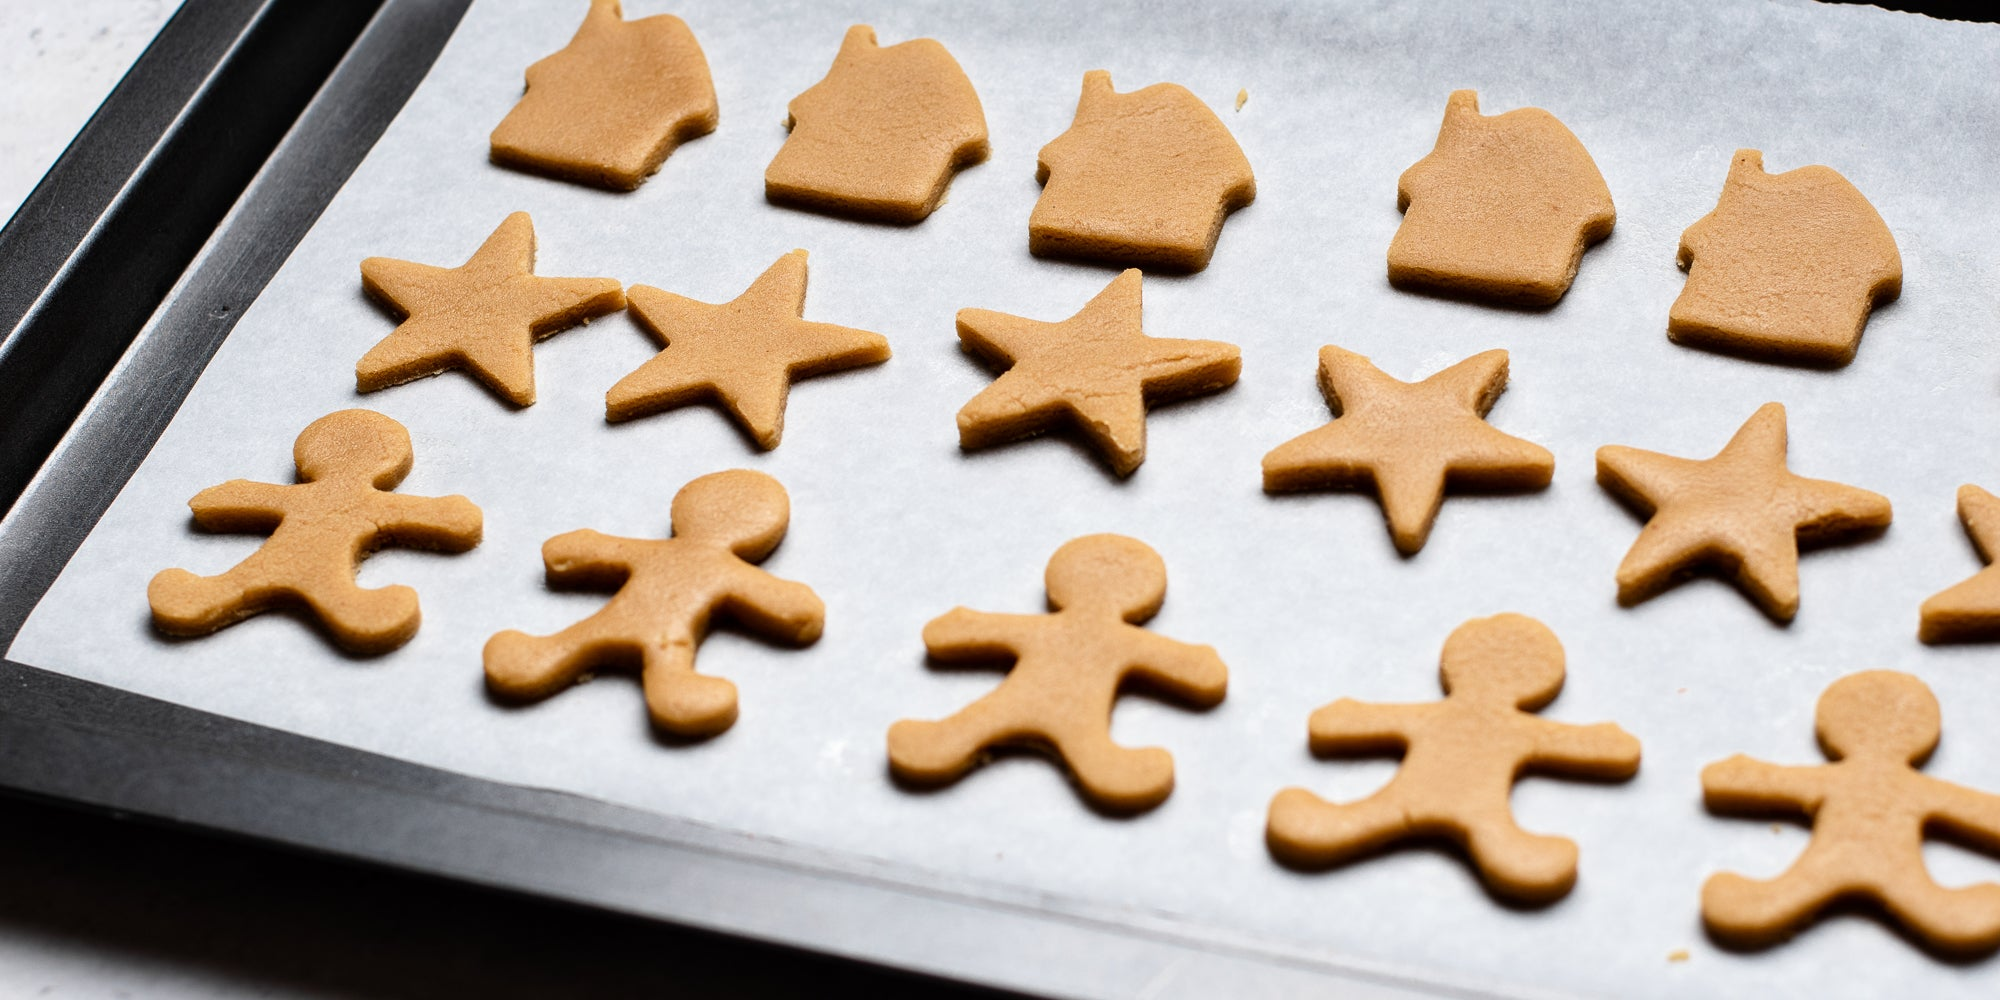 Shapes cut from Gingerbread Dough including, gingerbread men, stars and gingerbread houses lay on baking paper on a baking tray